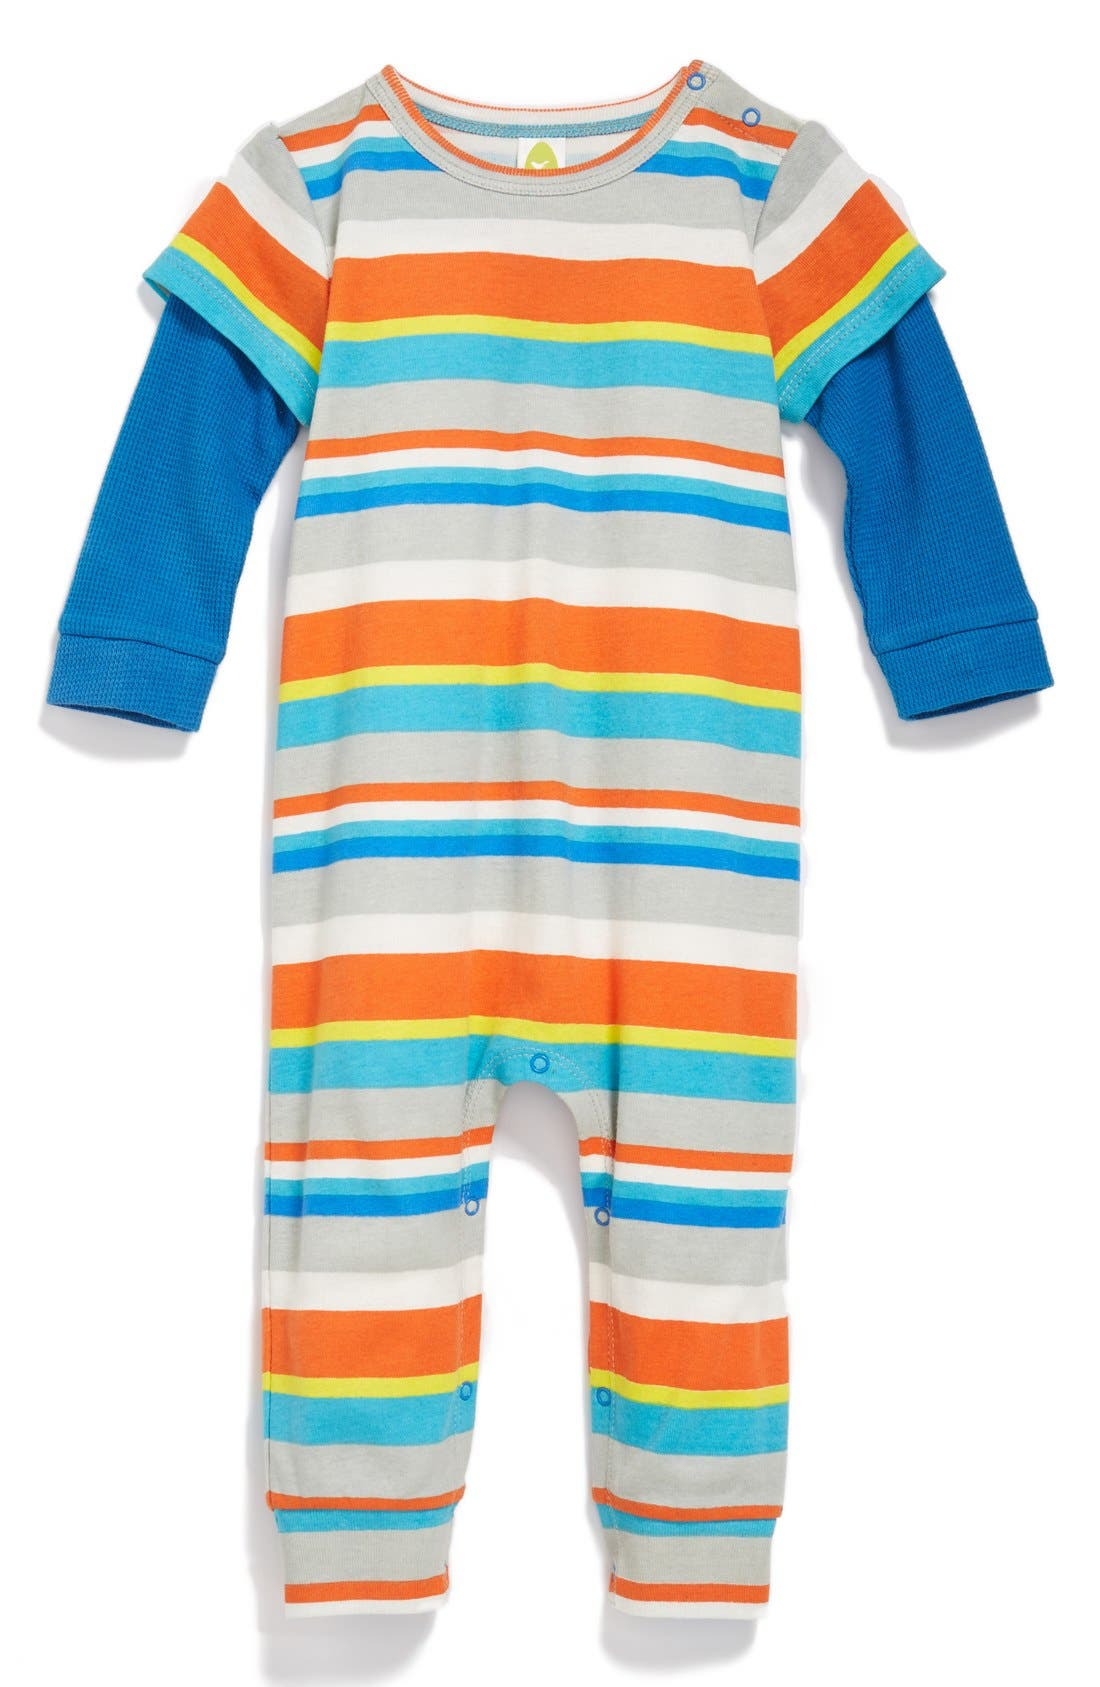 Main Image - Stem Baby Organic Cotton Romper (Baby Boys) (Nordstrom Exclusive)